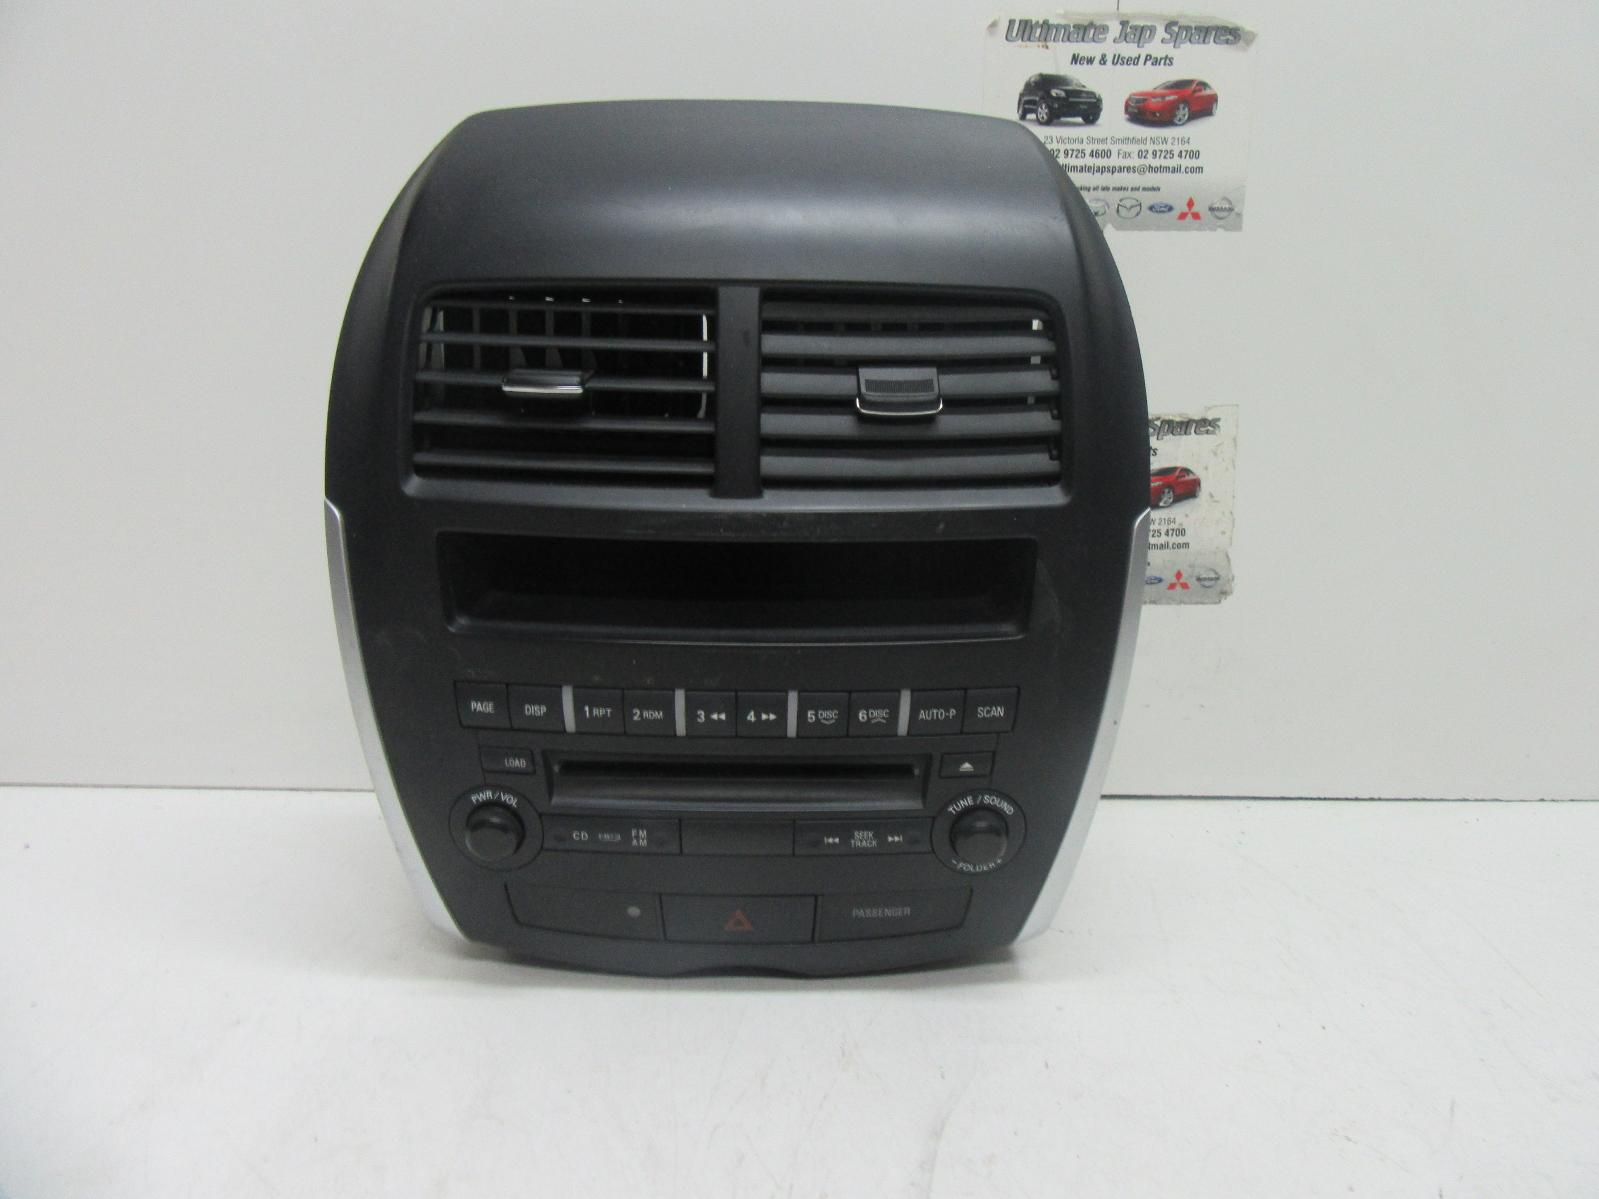 mitsubishi asx radio cd player cd stacker 6 disc in dash. Black Bedroom Furniture Sets. Home Design Ideas